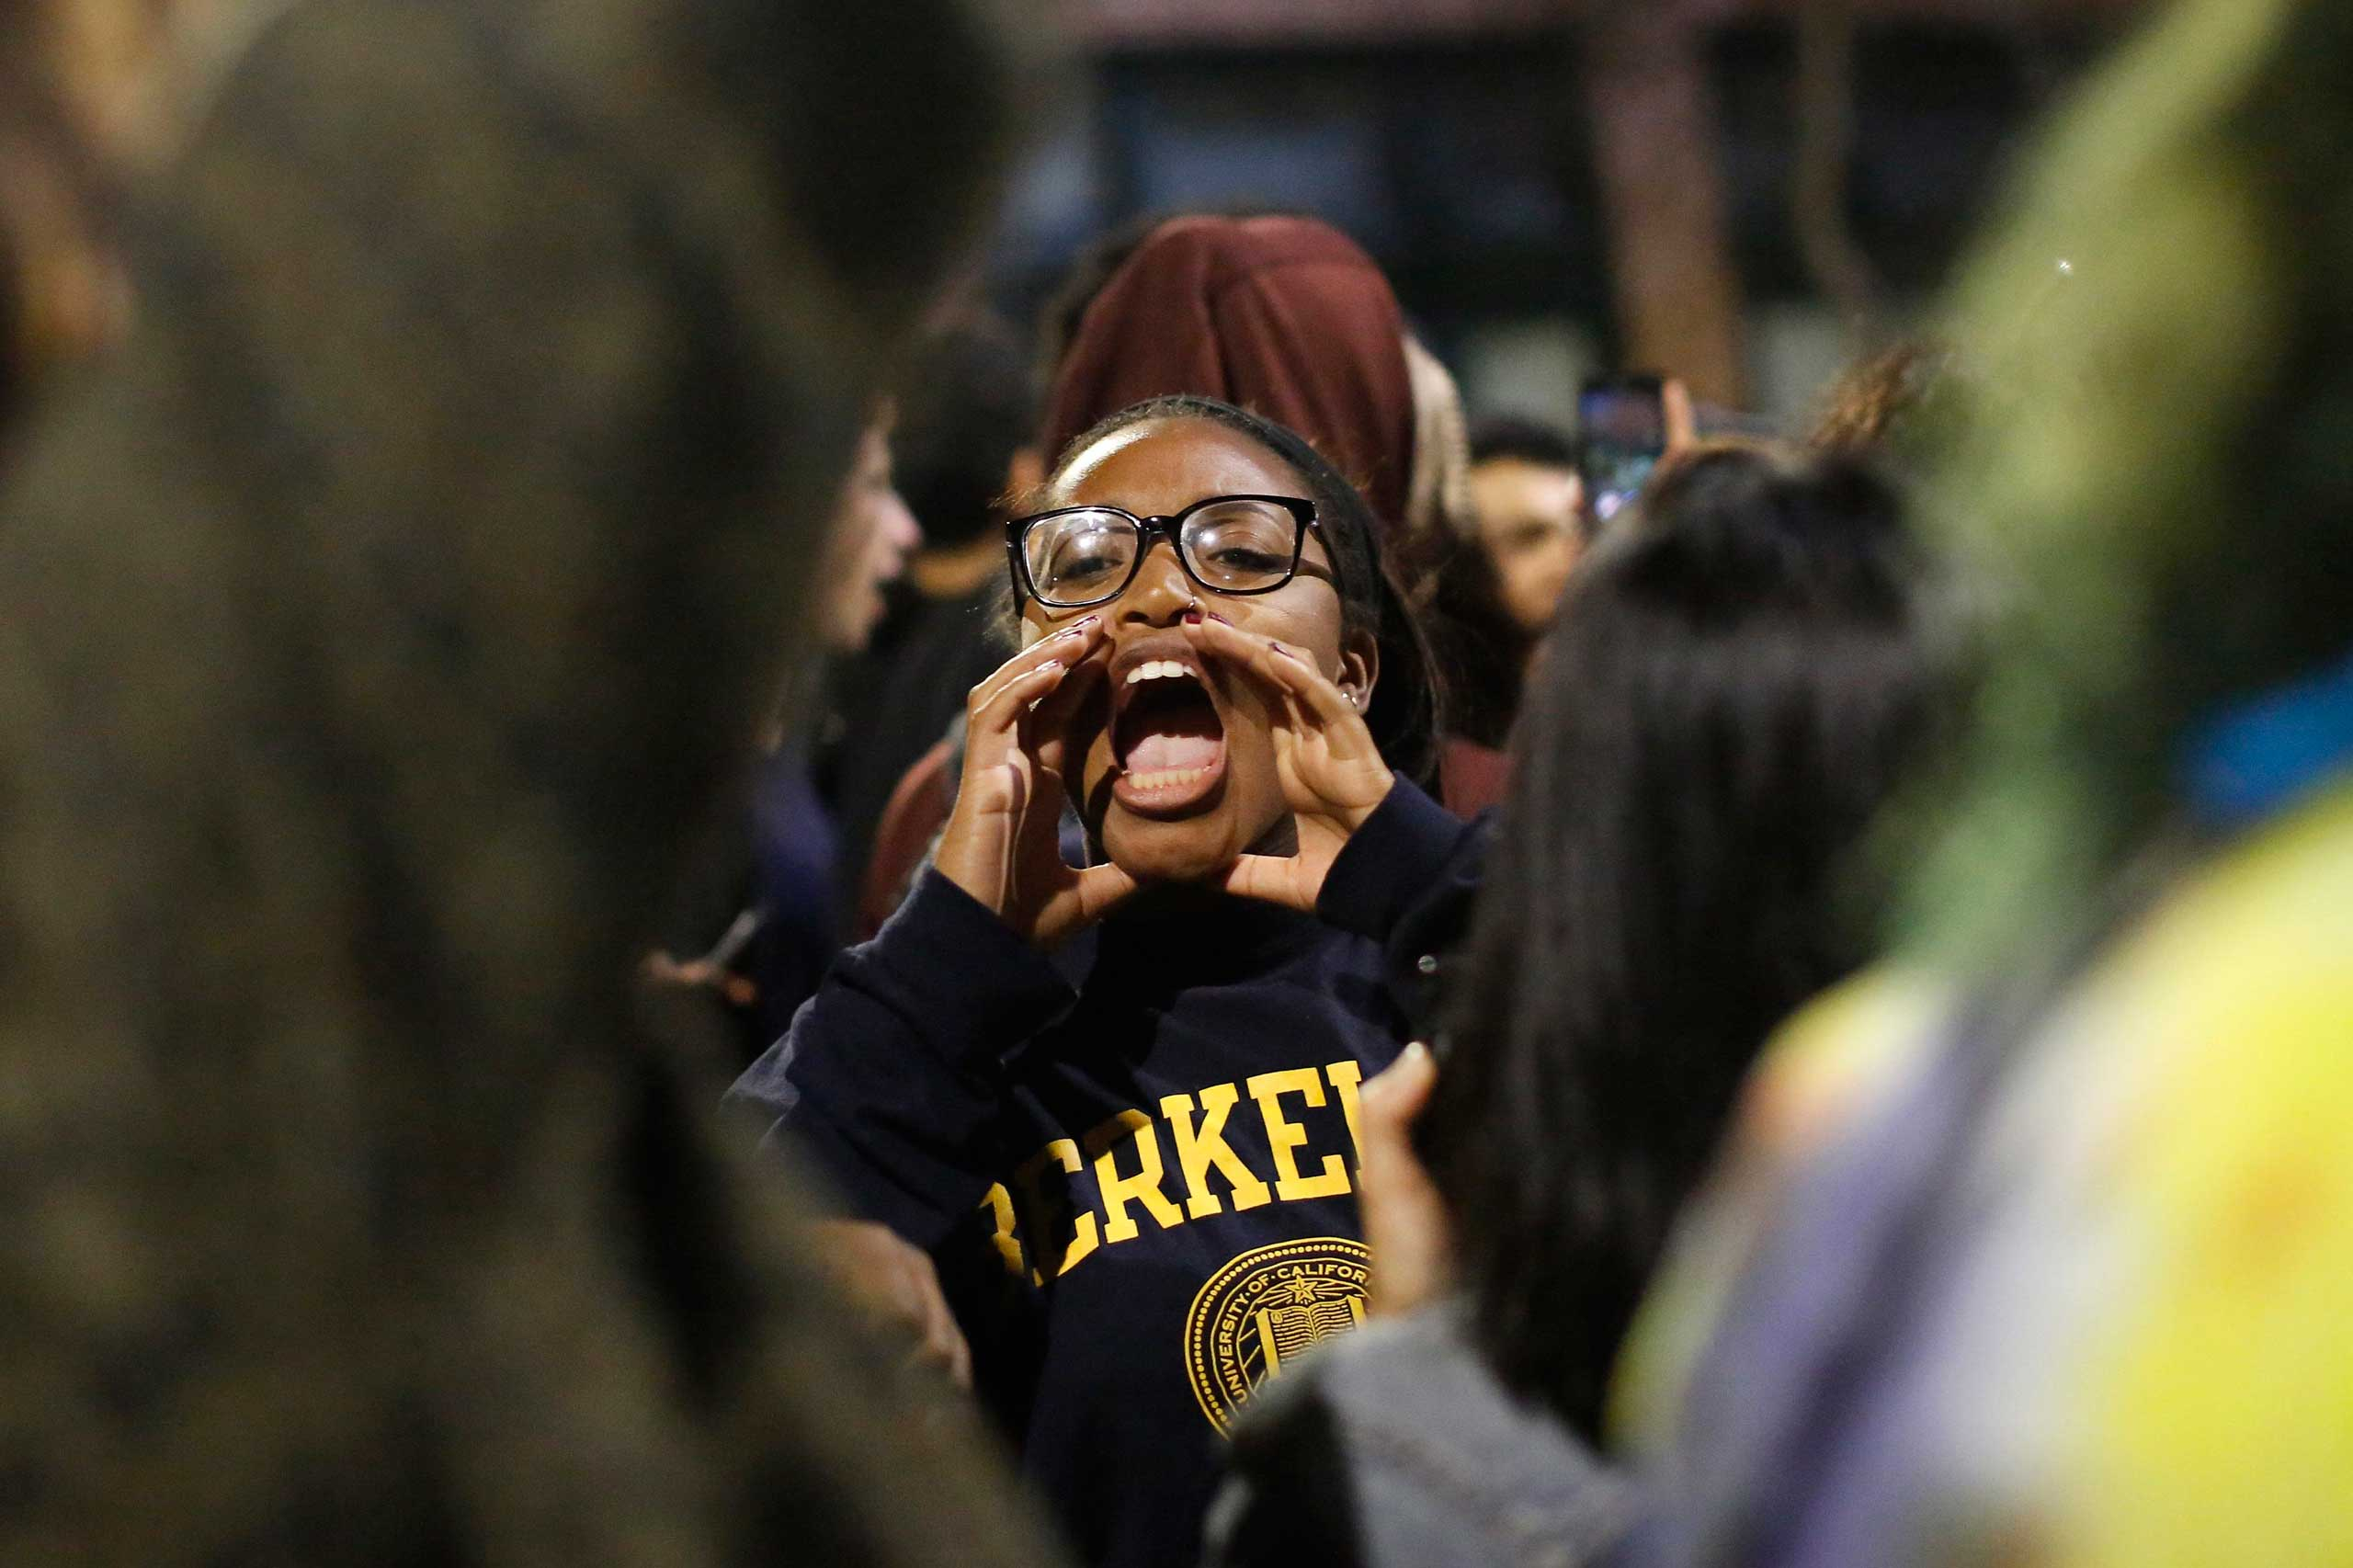 A protester chants during a march against the grand jury decision to not indict a police officer in the death of Eric Garner, in Berkeley, Calif., Dec. 7, 2014.